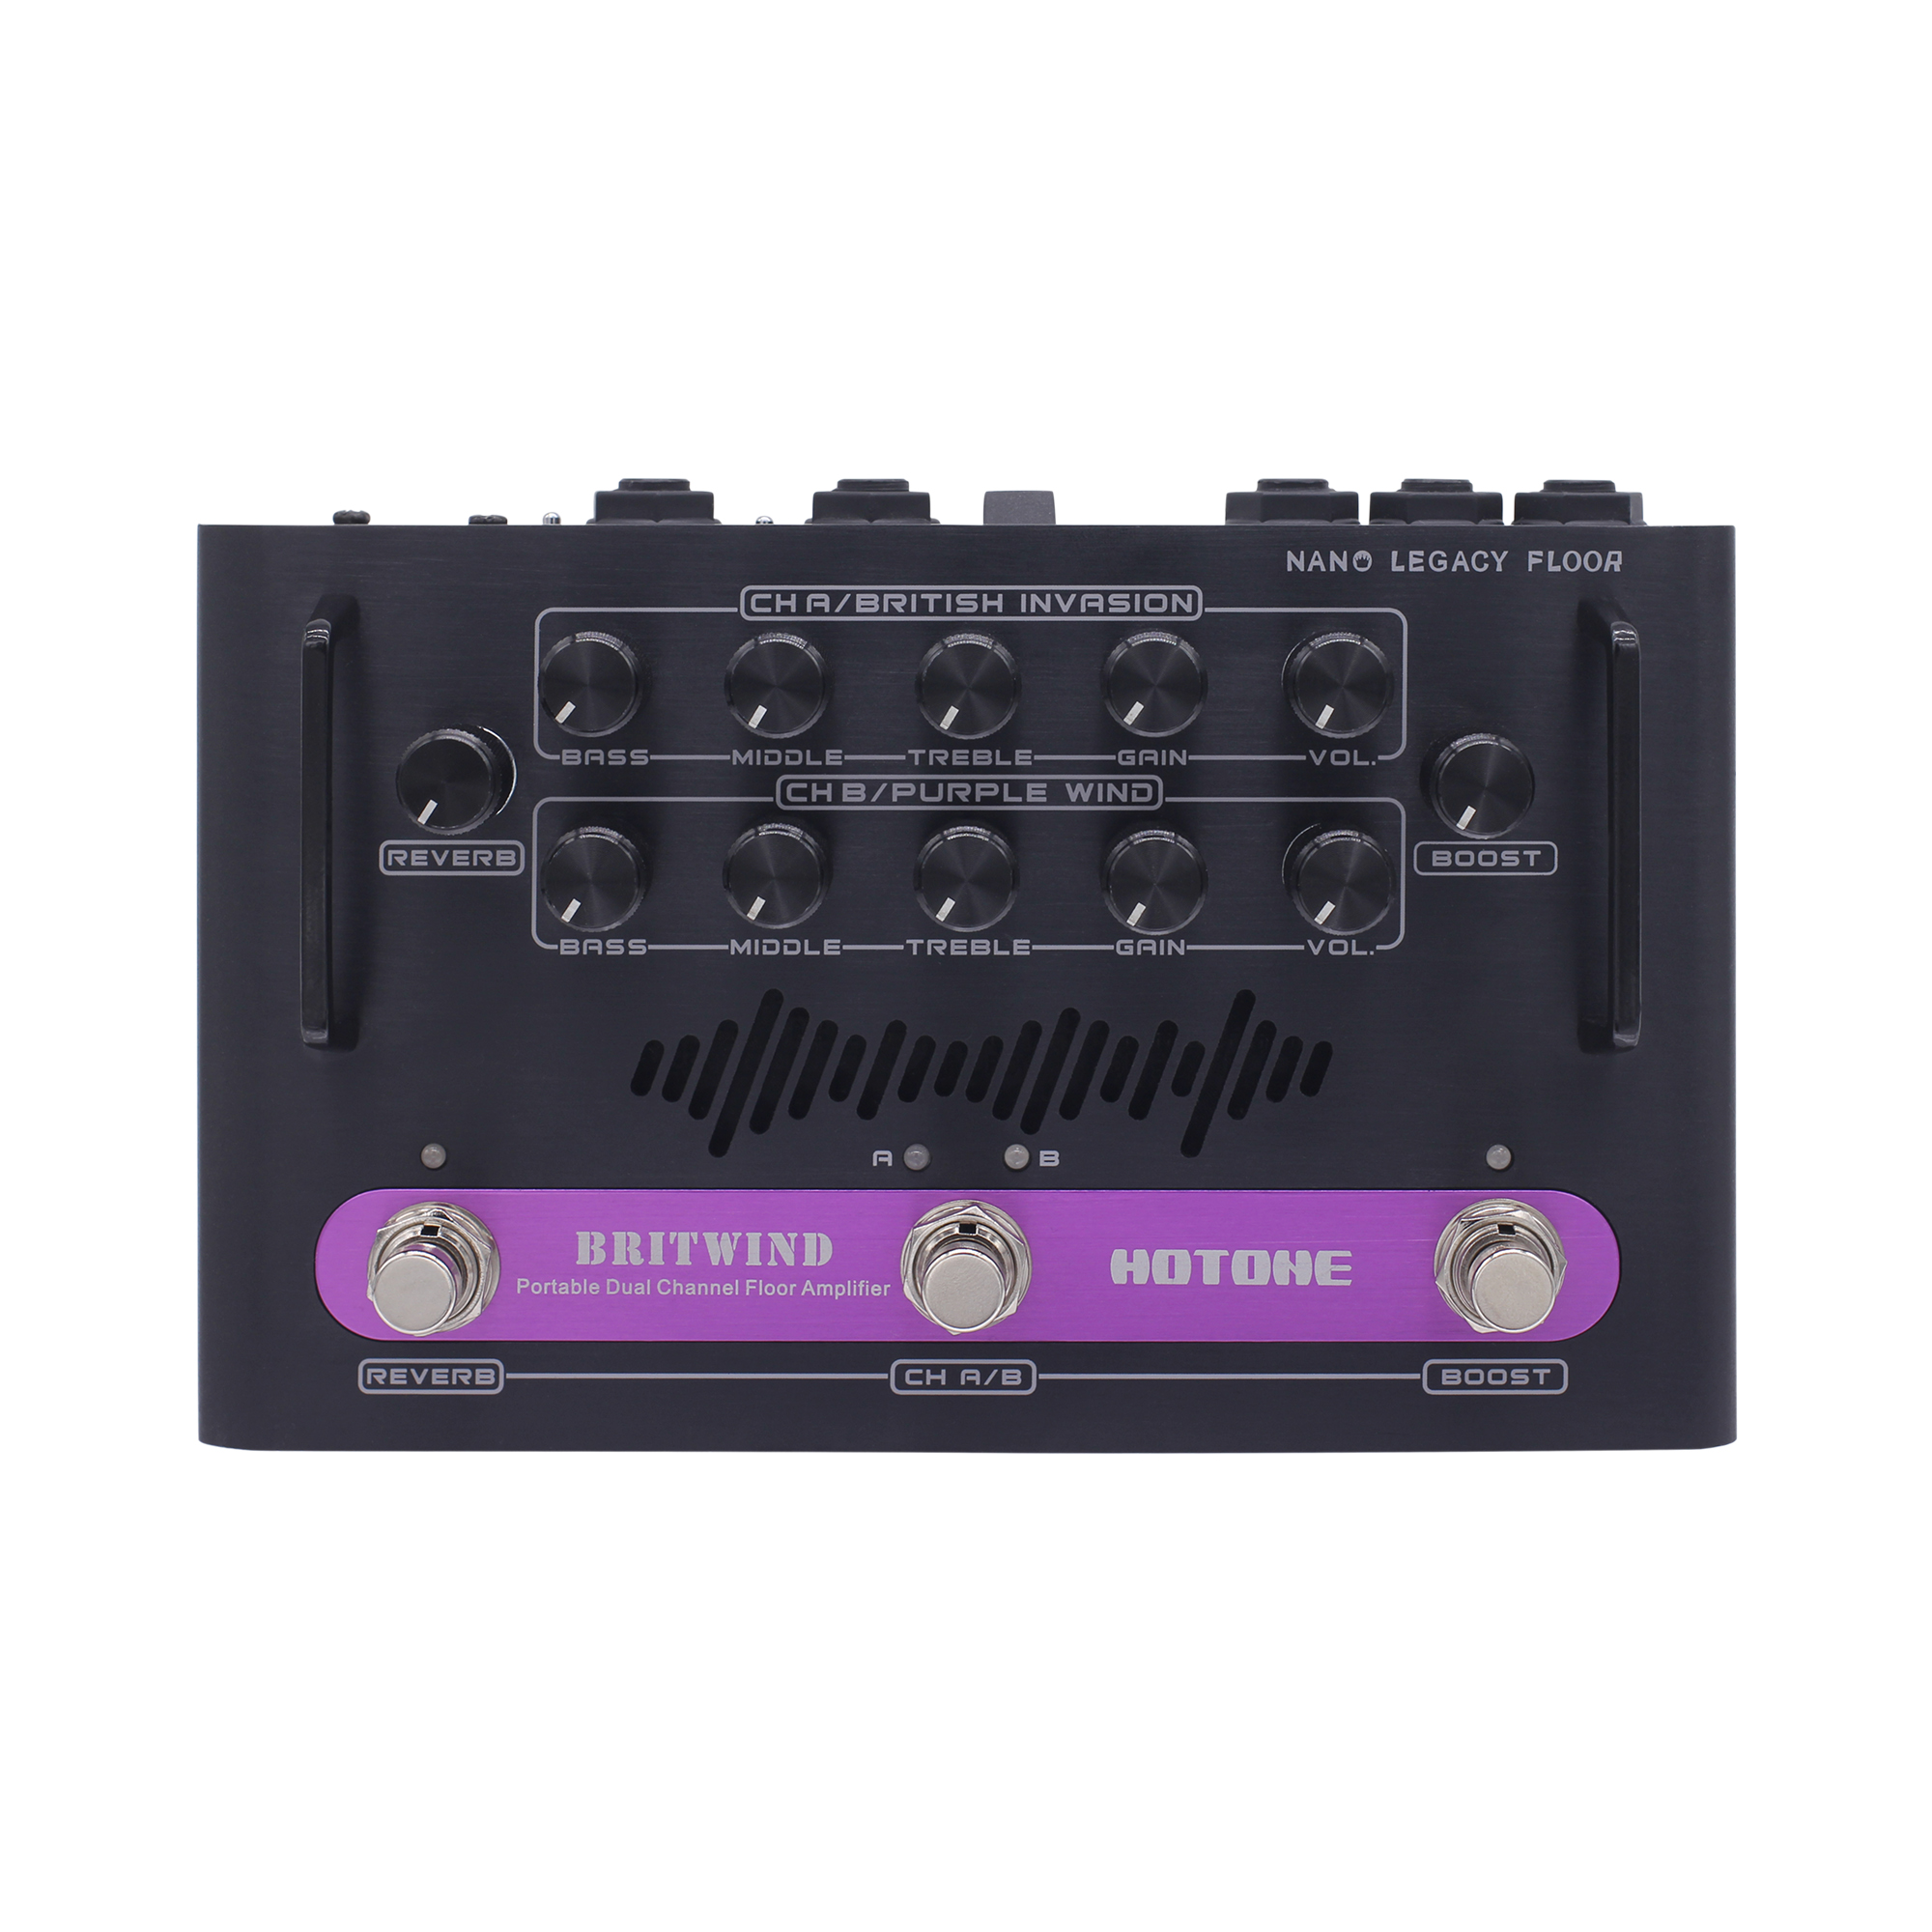 hotone britwind portable dual channel floor amplifier guitar amplifier nano legacy amps electric. Black Bedroom Furniture Sets. Home Design Ideas